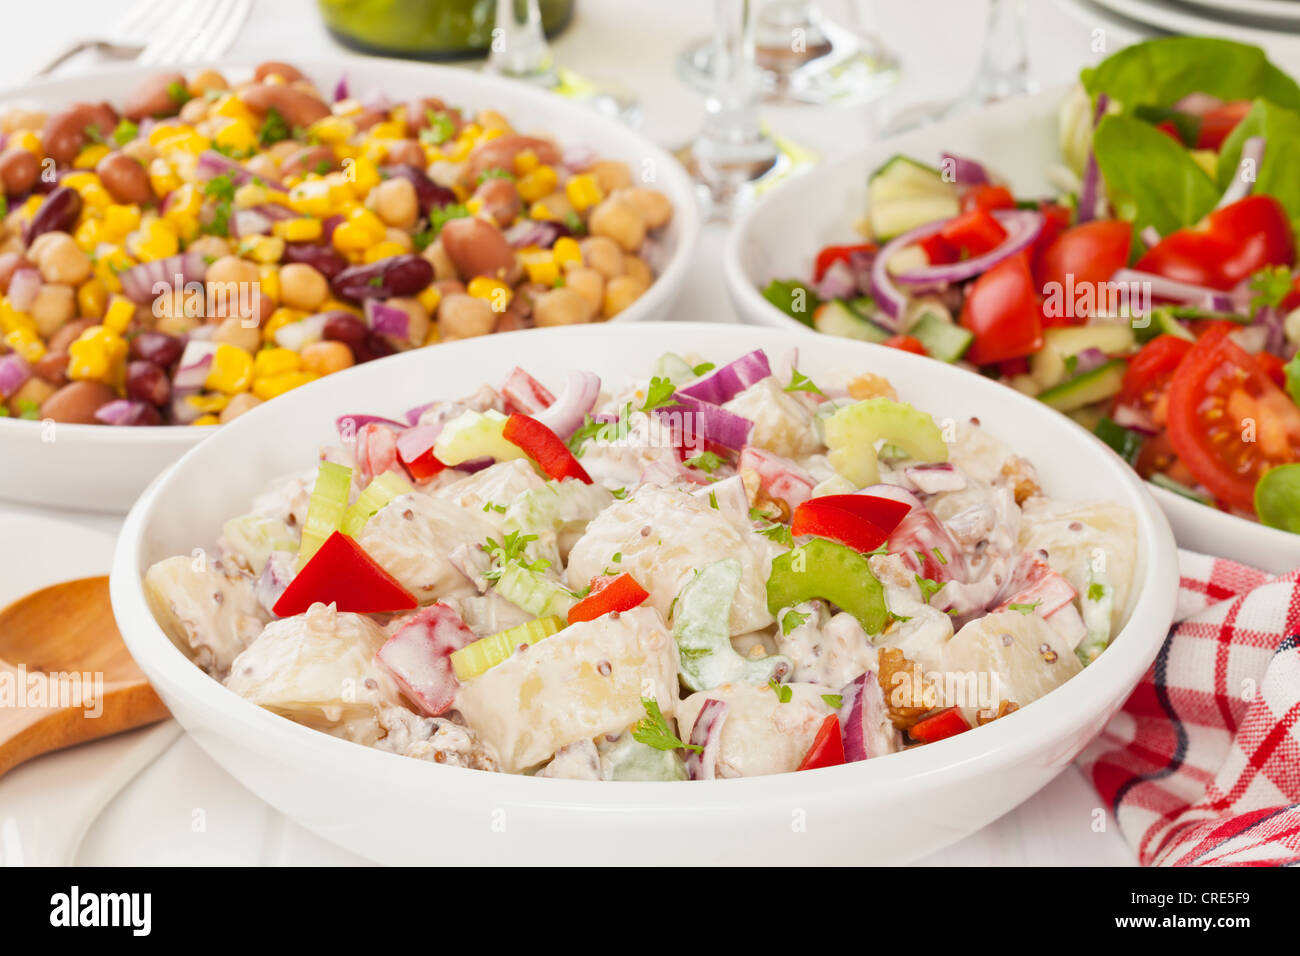 An assortment of salads on a buffet table - Stock Image